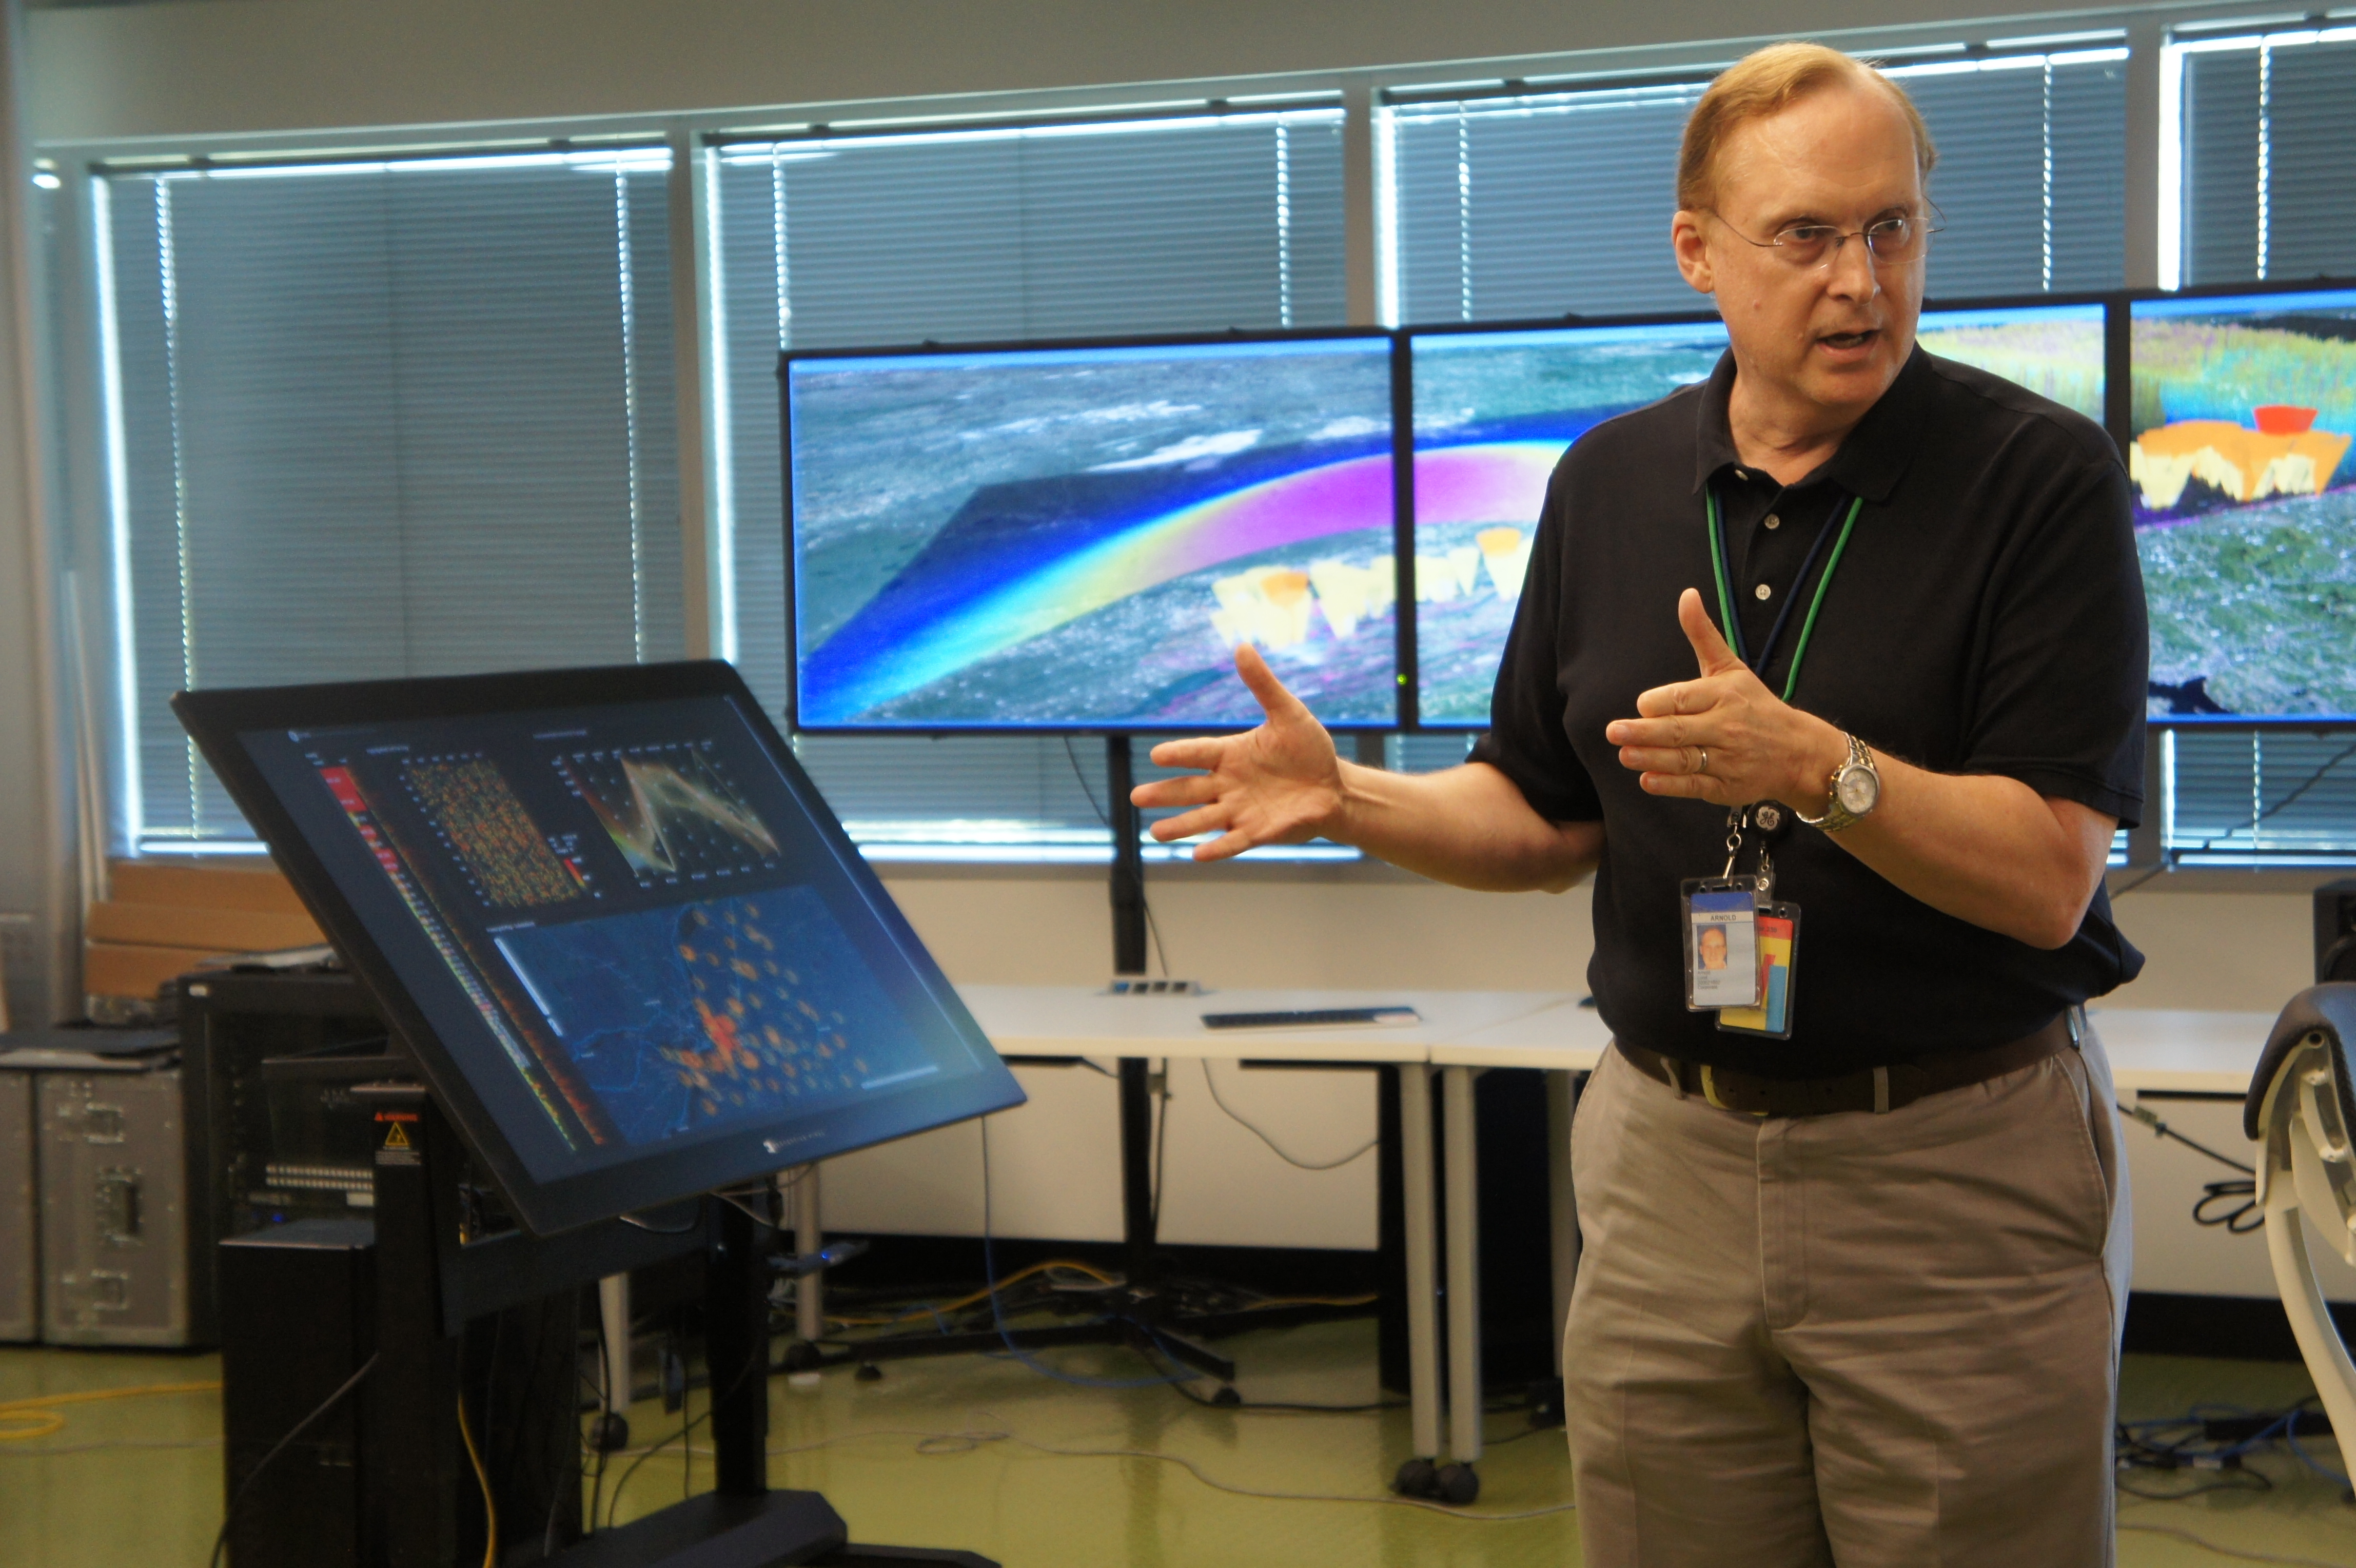 The manager of GE's UX Industrial Innovation Lab, Arnie Lund, shows off the lab.